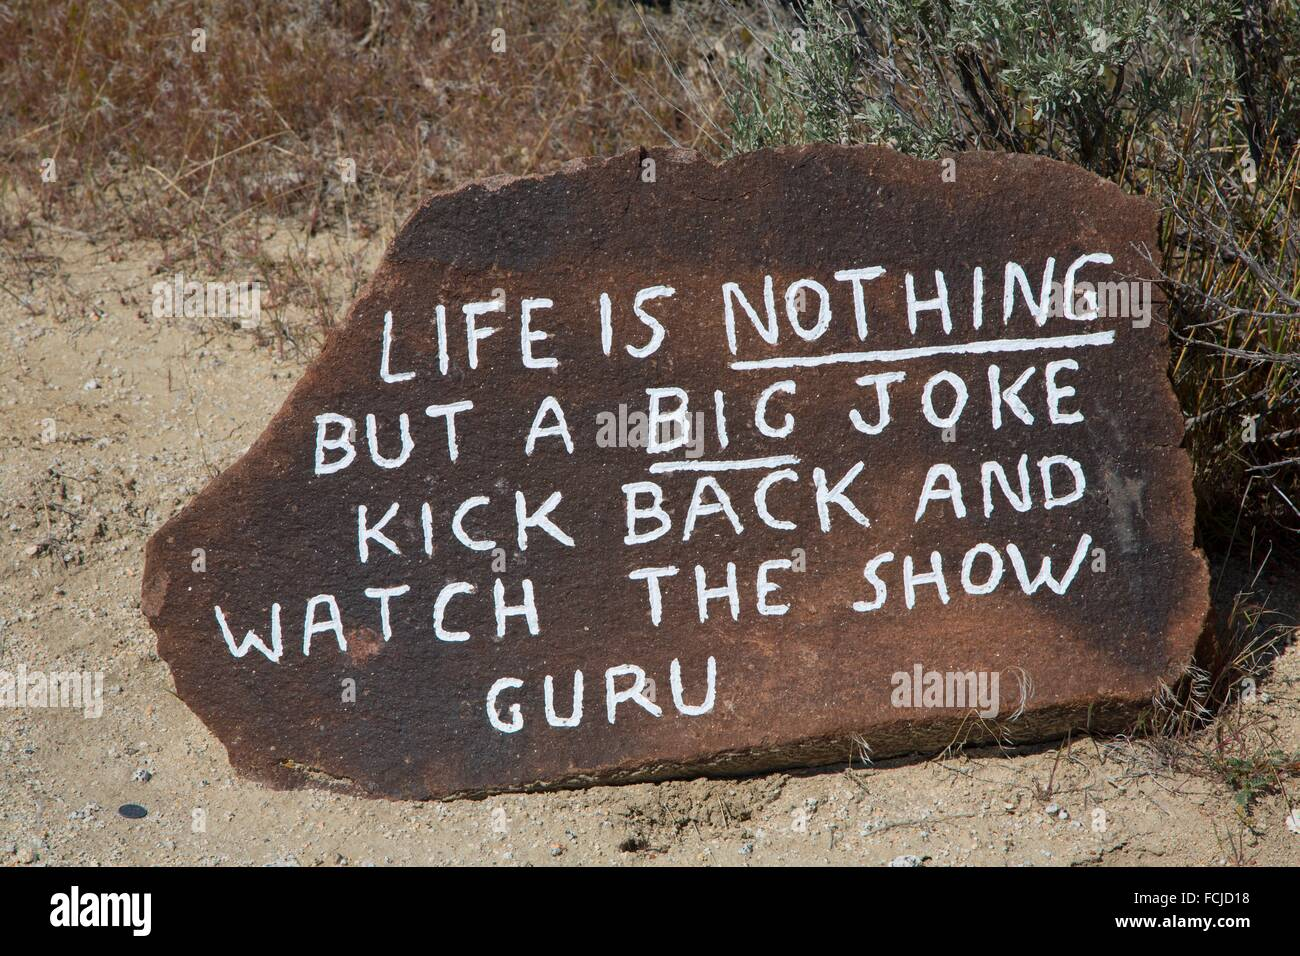 Guru folk saying rock, Guru Road, Gerlach, Nevada. - Stock Image